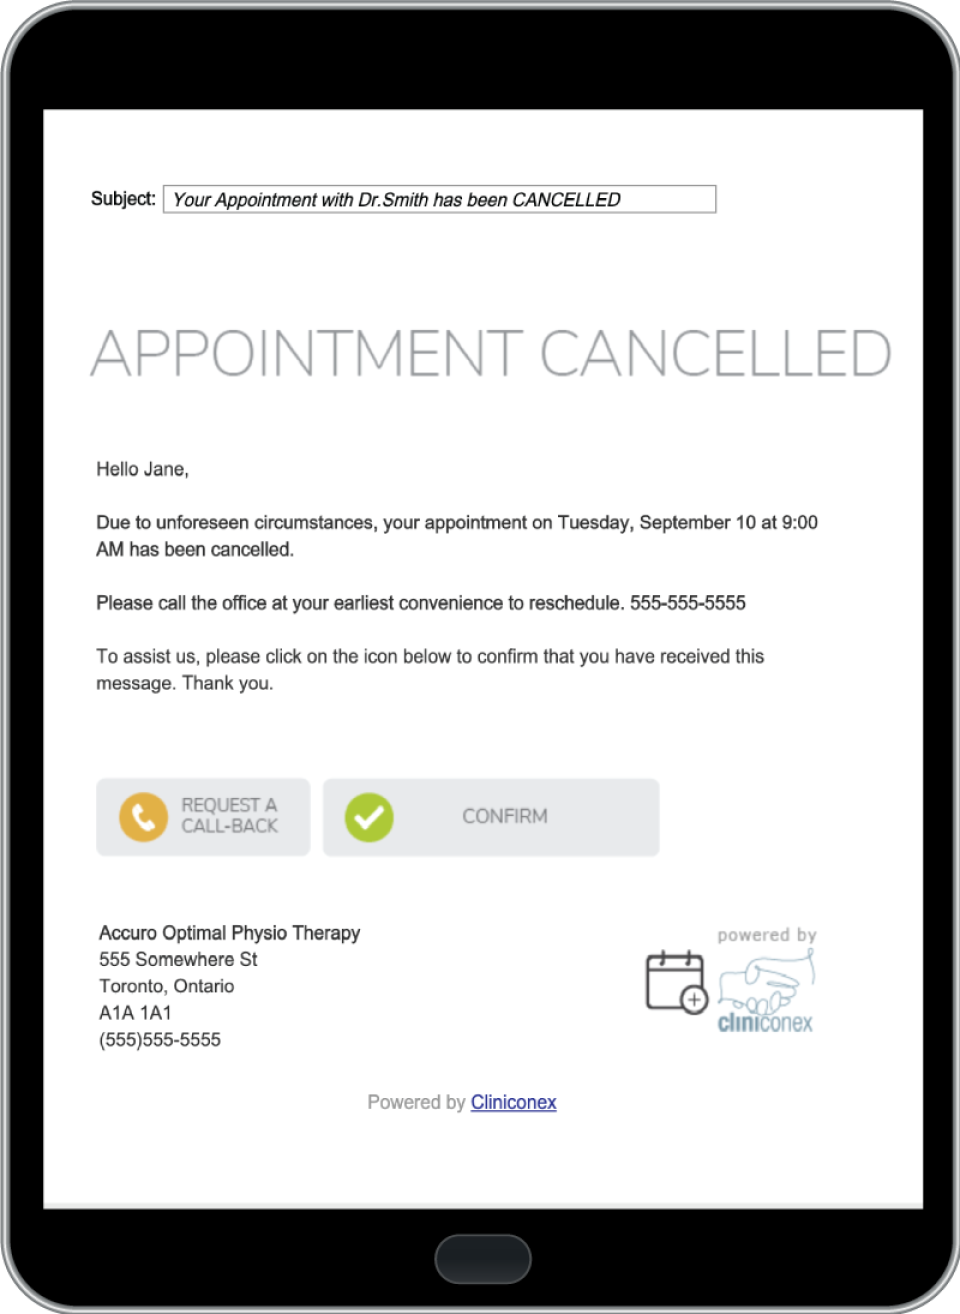 Cliniconex appointments